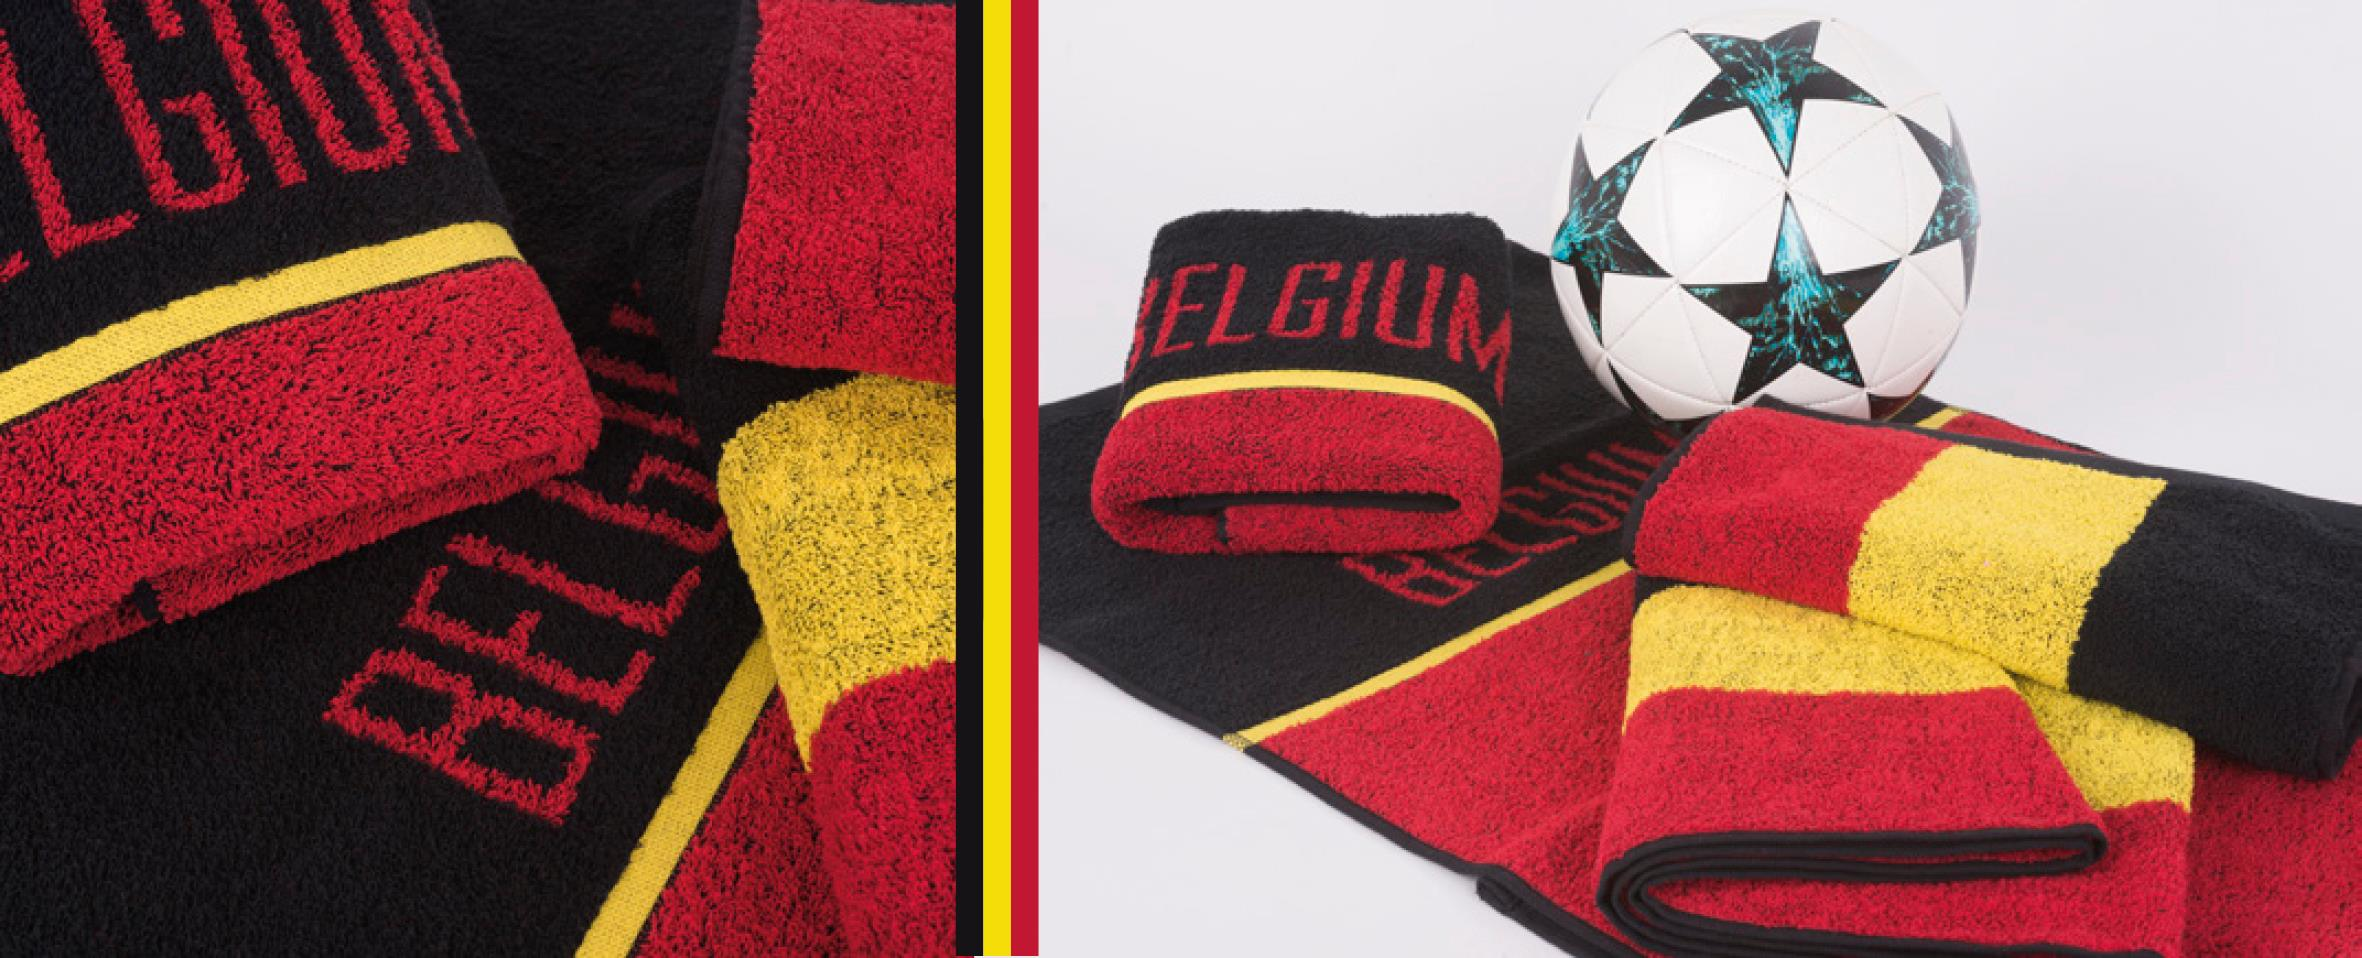 Belgian-themed towels by Clarysse